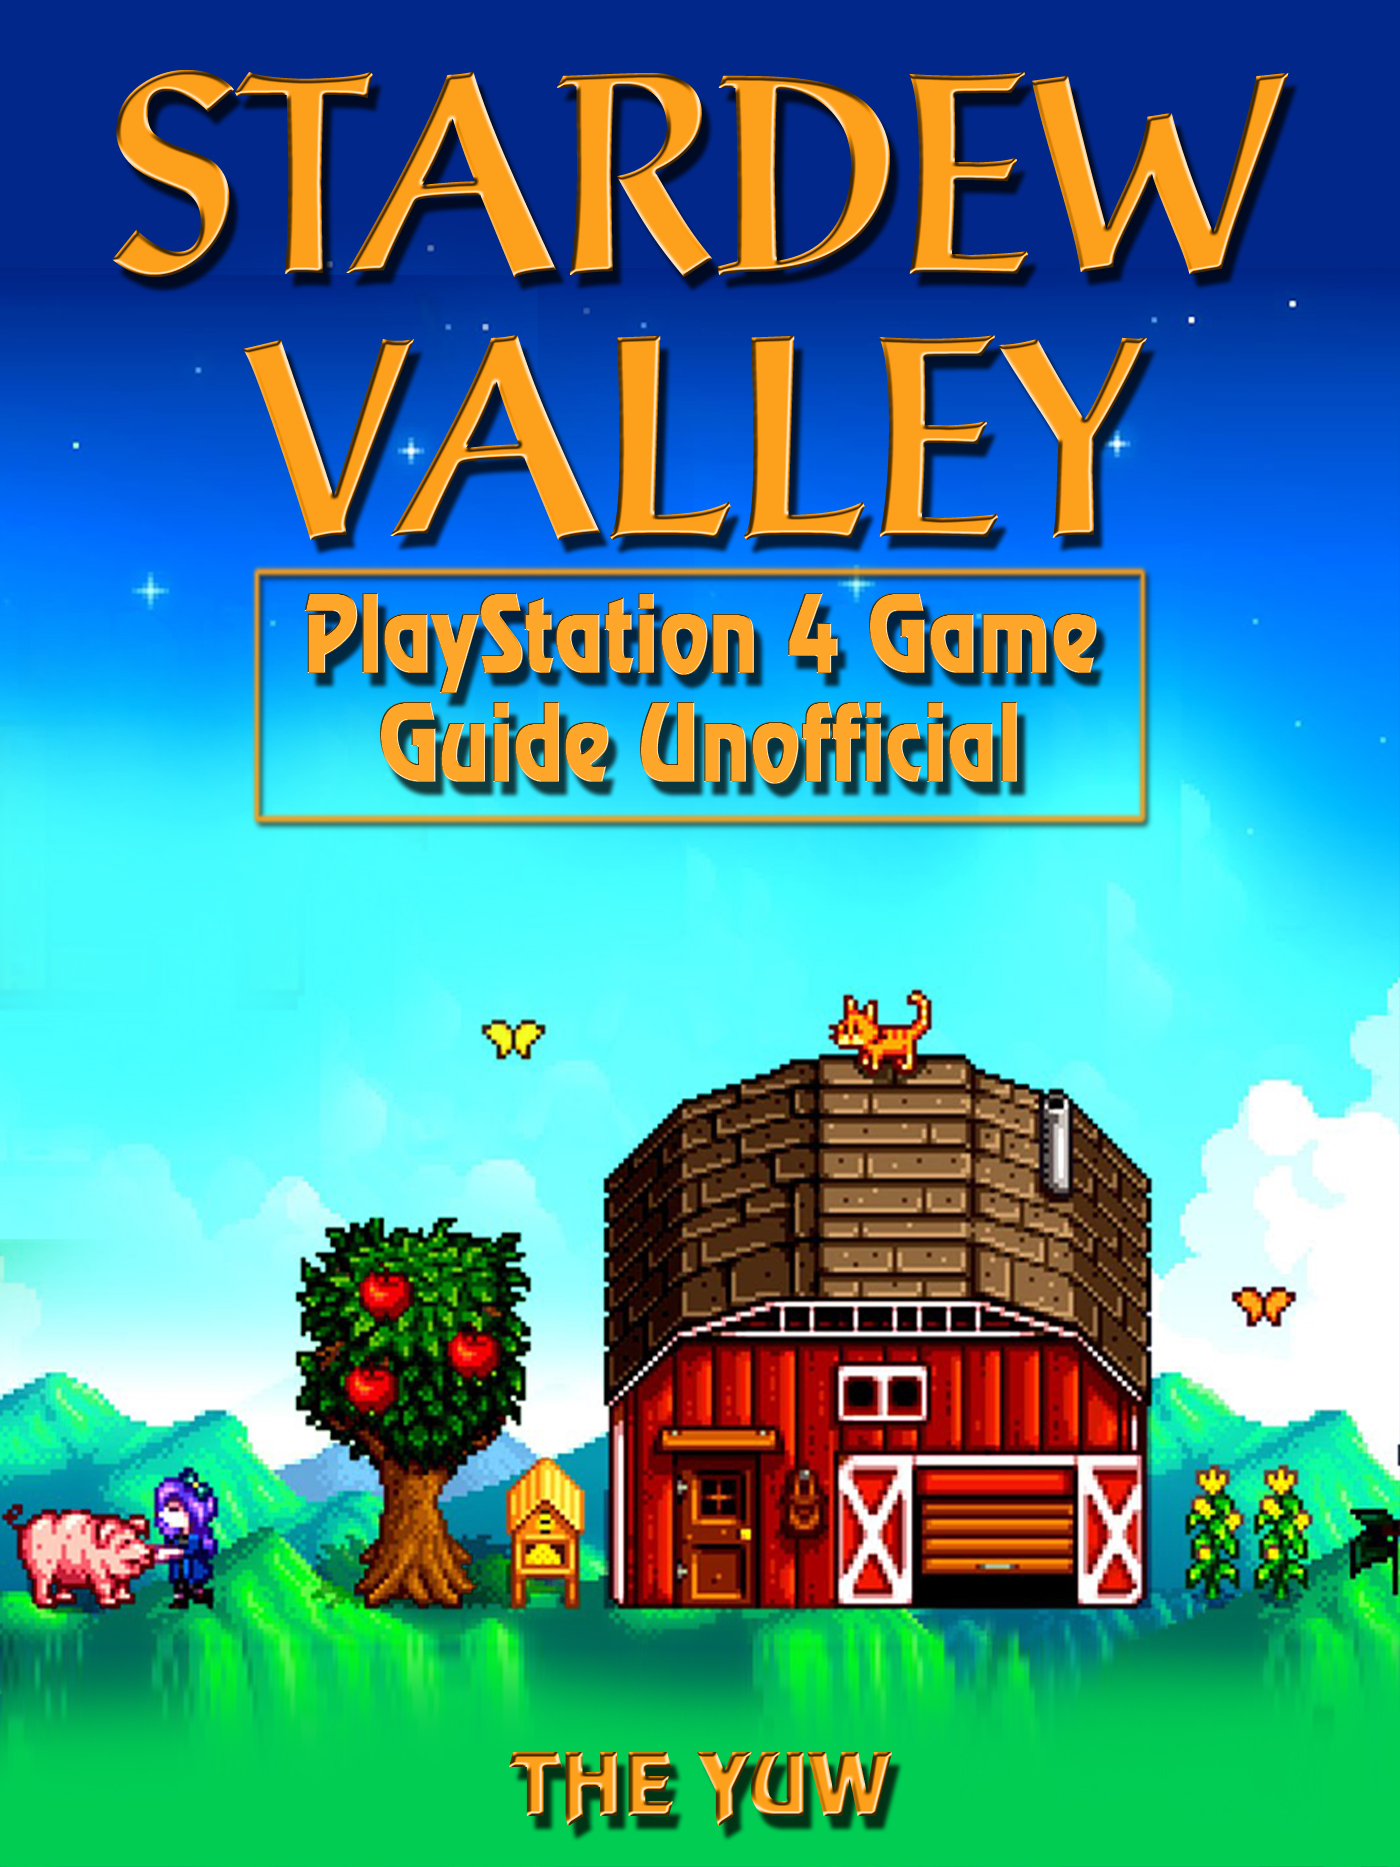 Stardew Valley PlayStation 4 Game Guide Unofficial